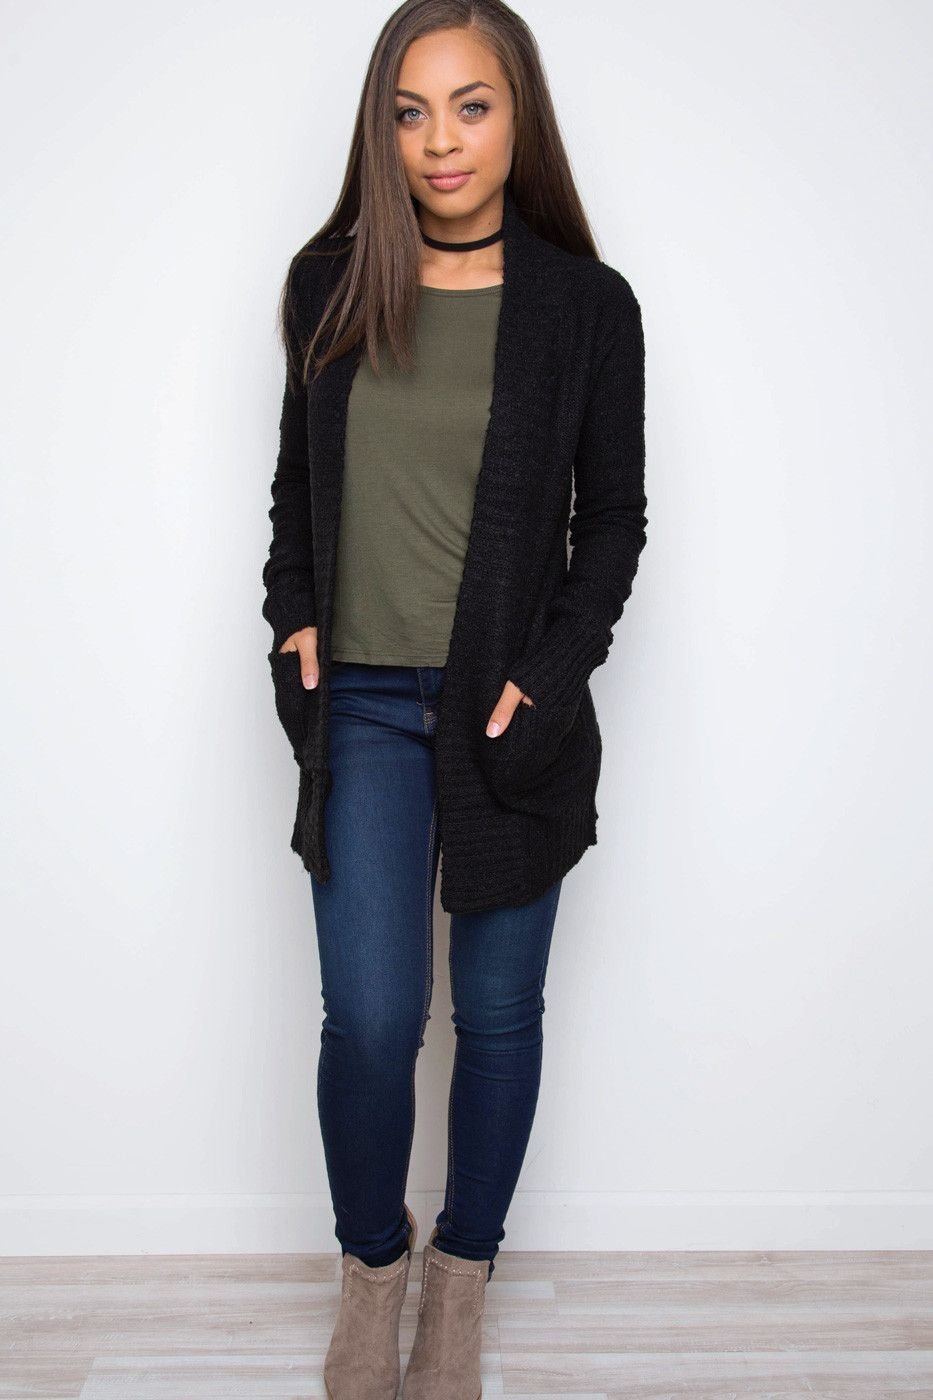 How To Style Long Black Cardigan